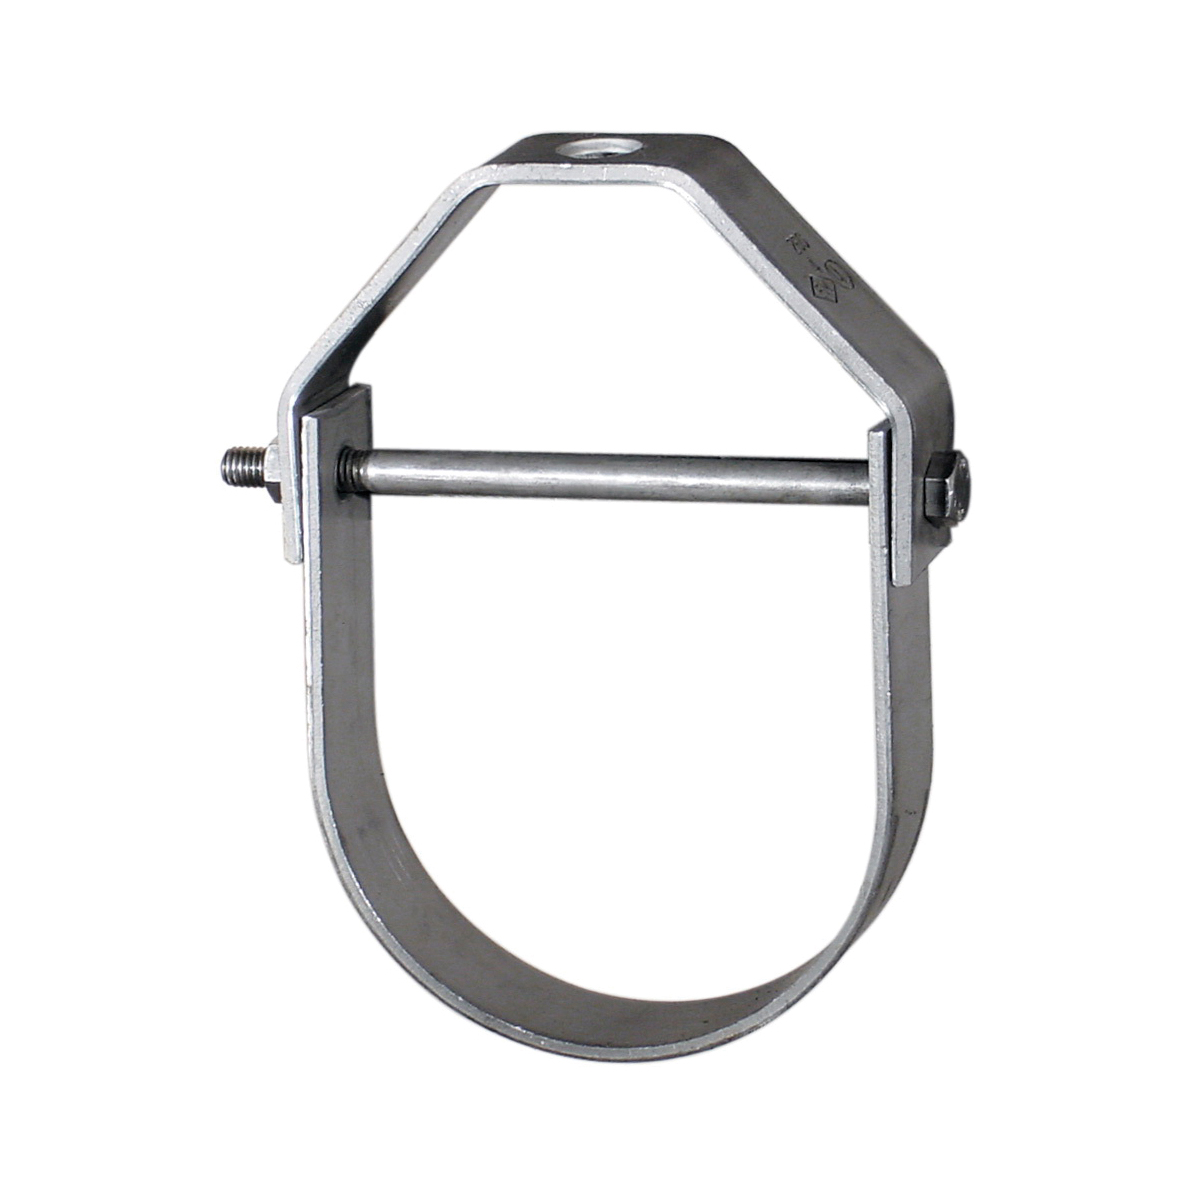 Anvil® 0500359583 FIG 260 Adjustable Clevis Hanger, 2-1/2 in Pipe, 1/2 in Rod, 1350 lb Load, Carbon Steel, Galvanized